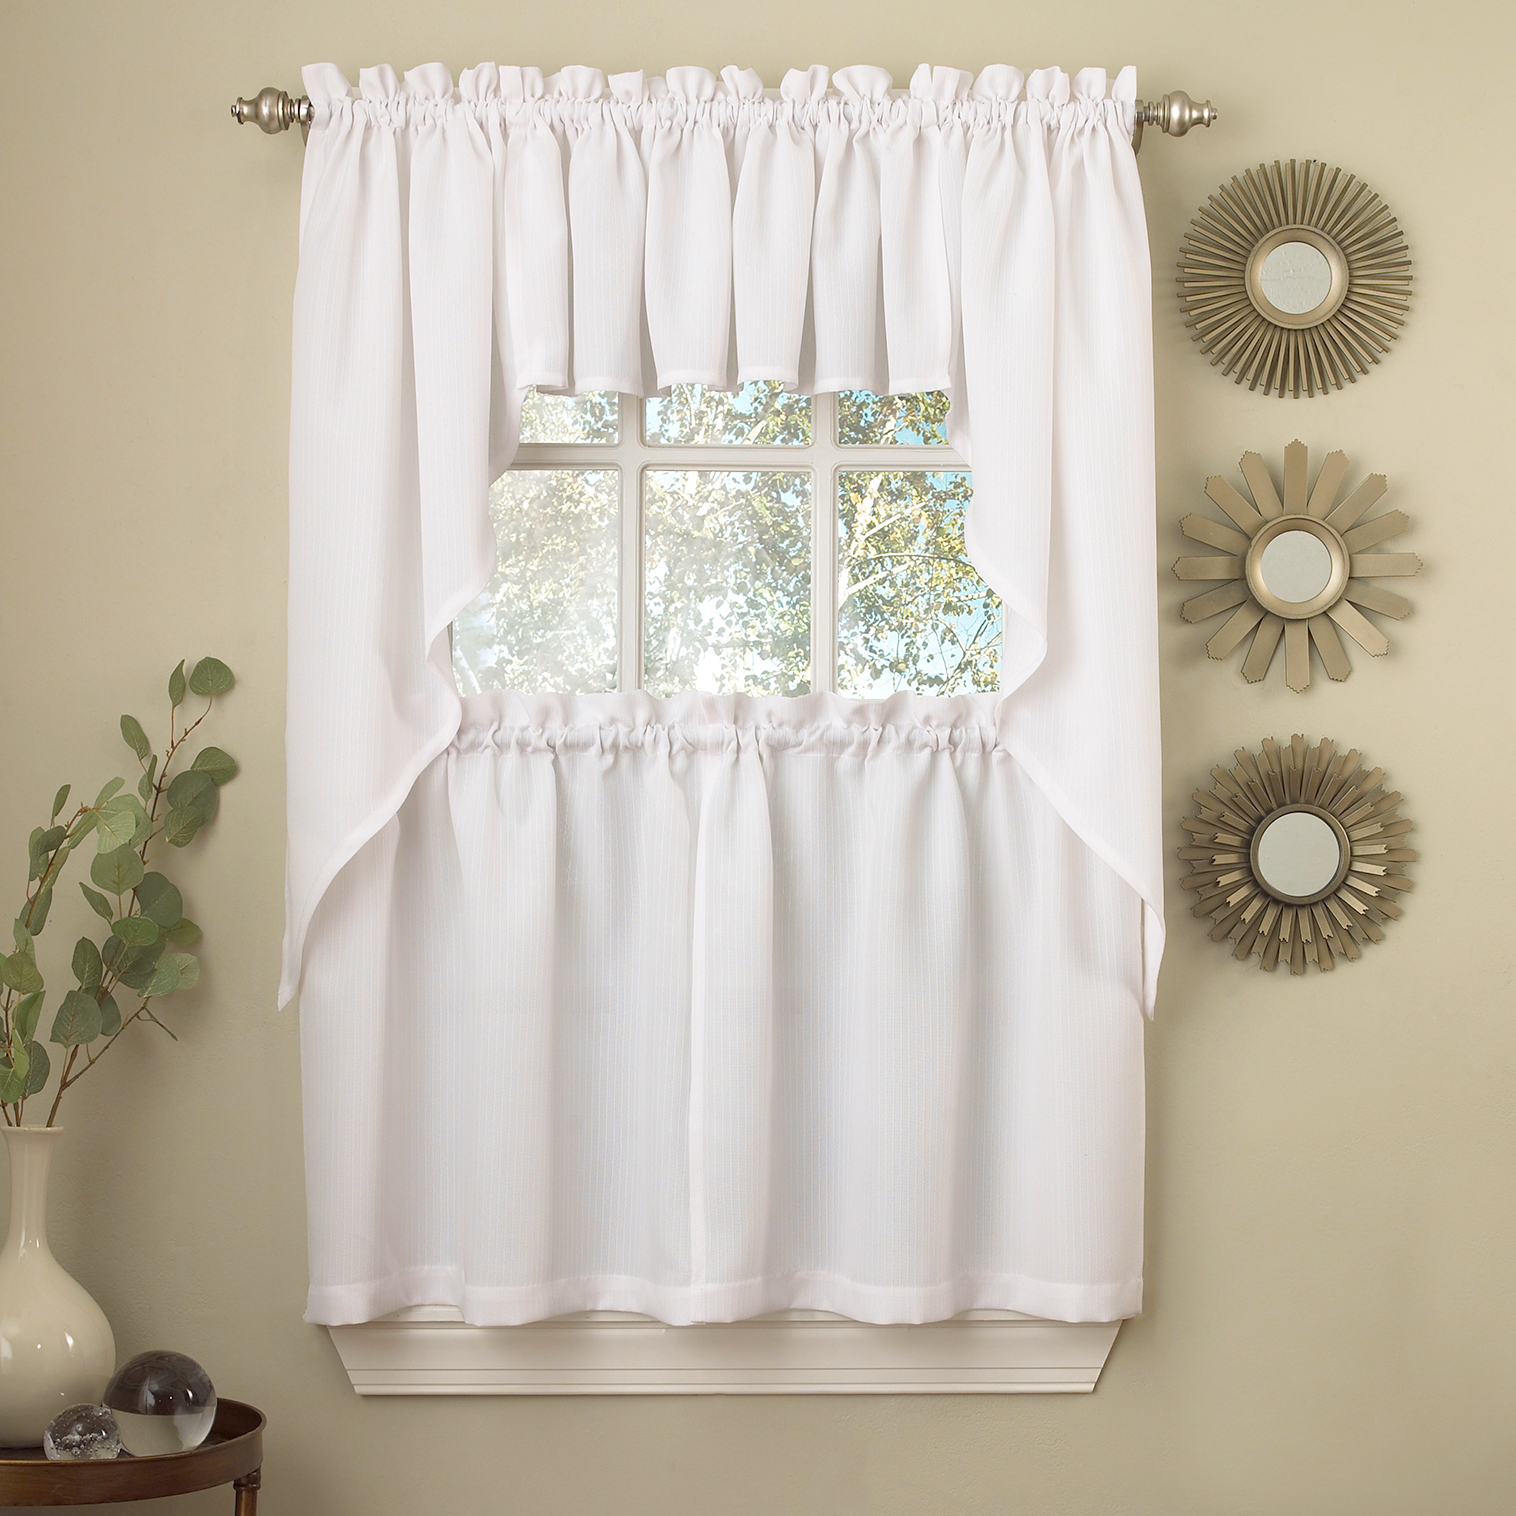 Details About White Solid Opaque Ribcord Kitchen Curtains – Choice Of Tiers Valance Or Swag With Semi Sheer Rod Pocket Kitchen Curtain Valance And Tiers Sets (View 7 of 20)